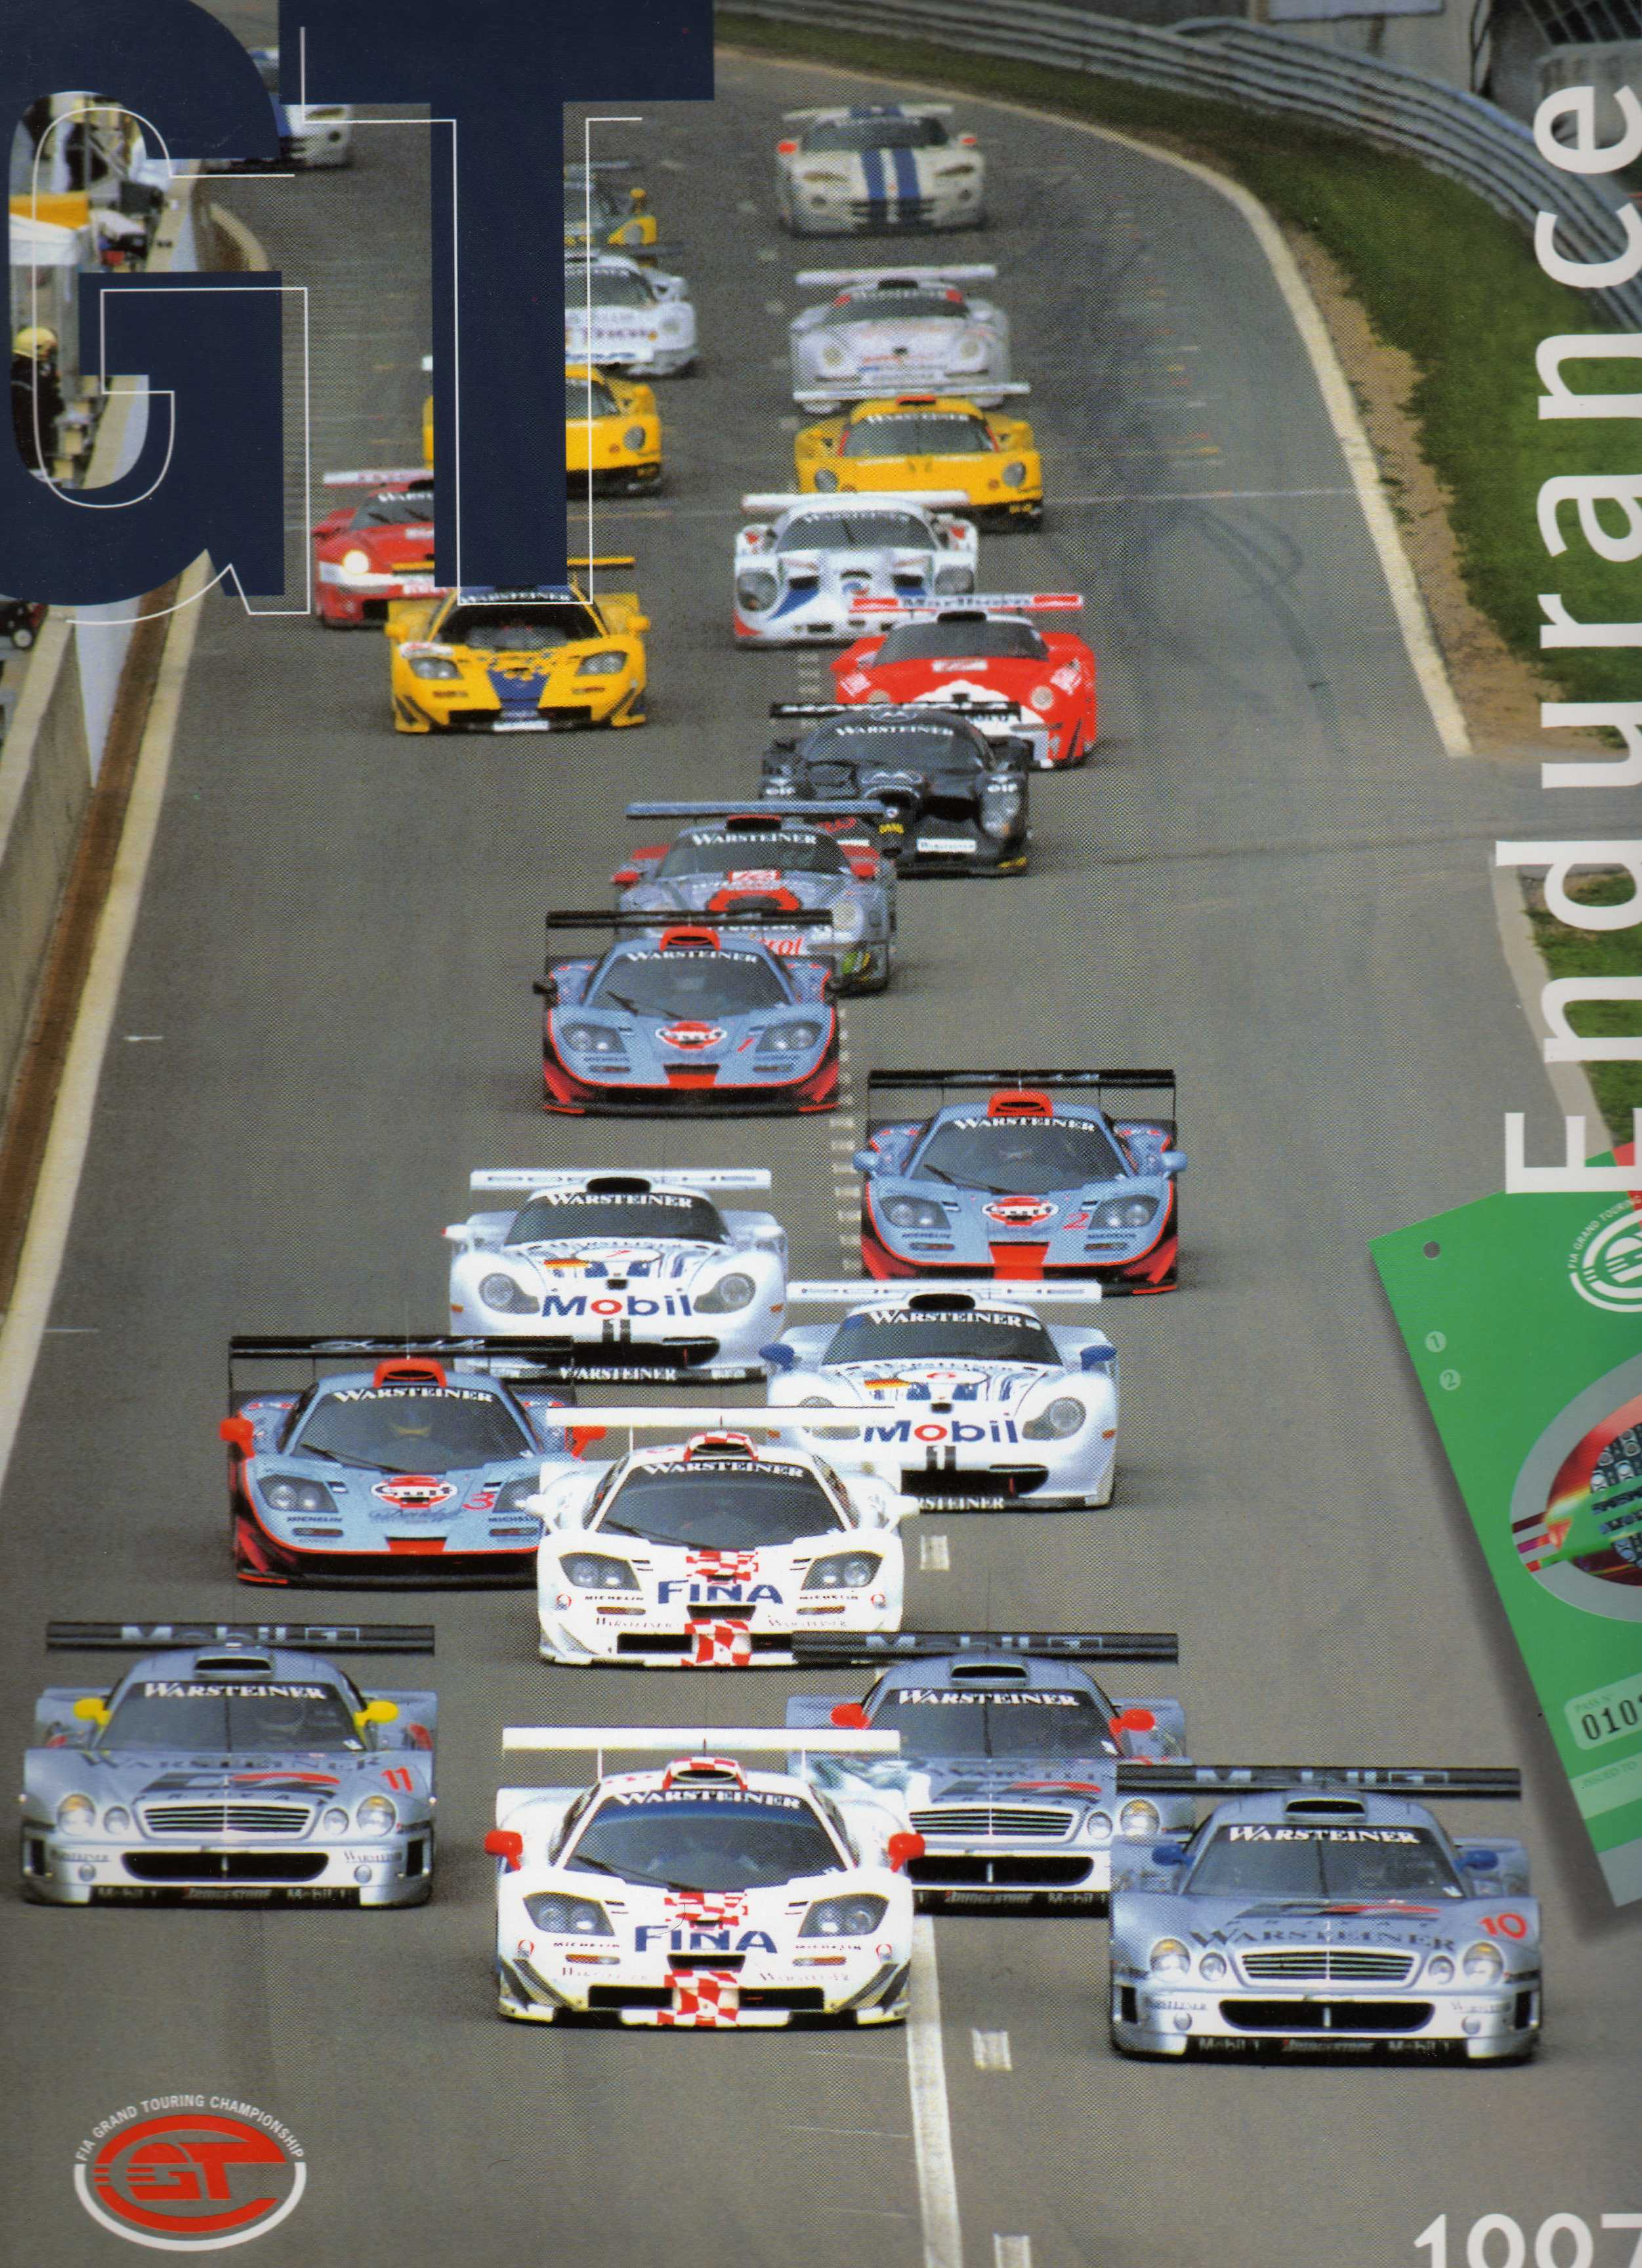 Fia Gt Championship Yearbooks